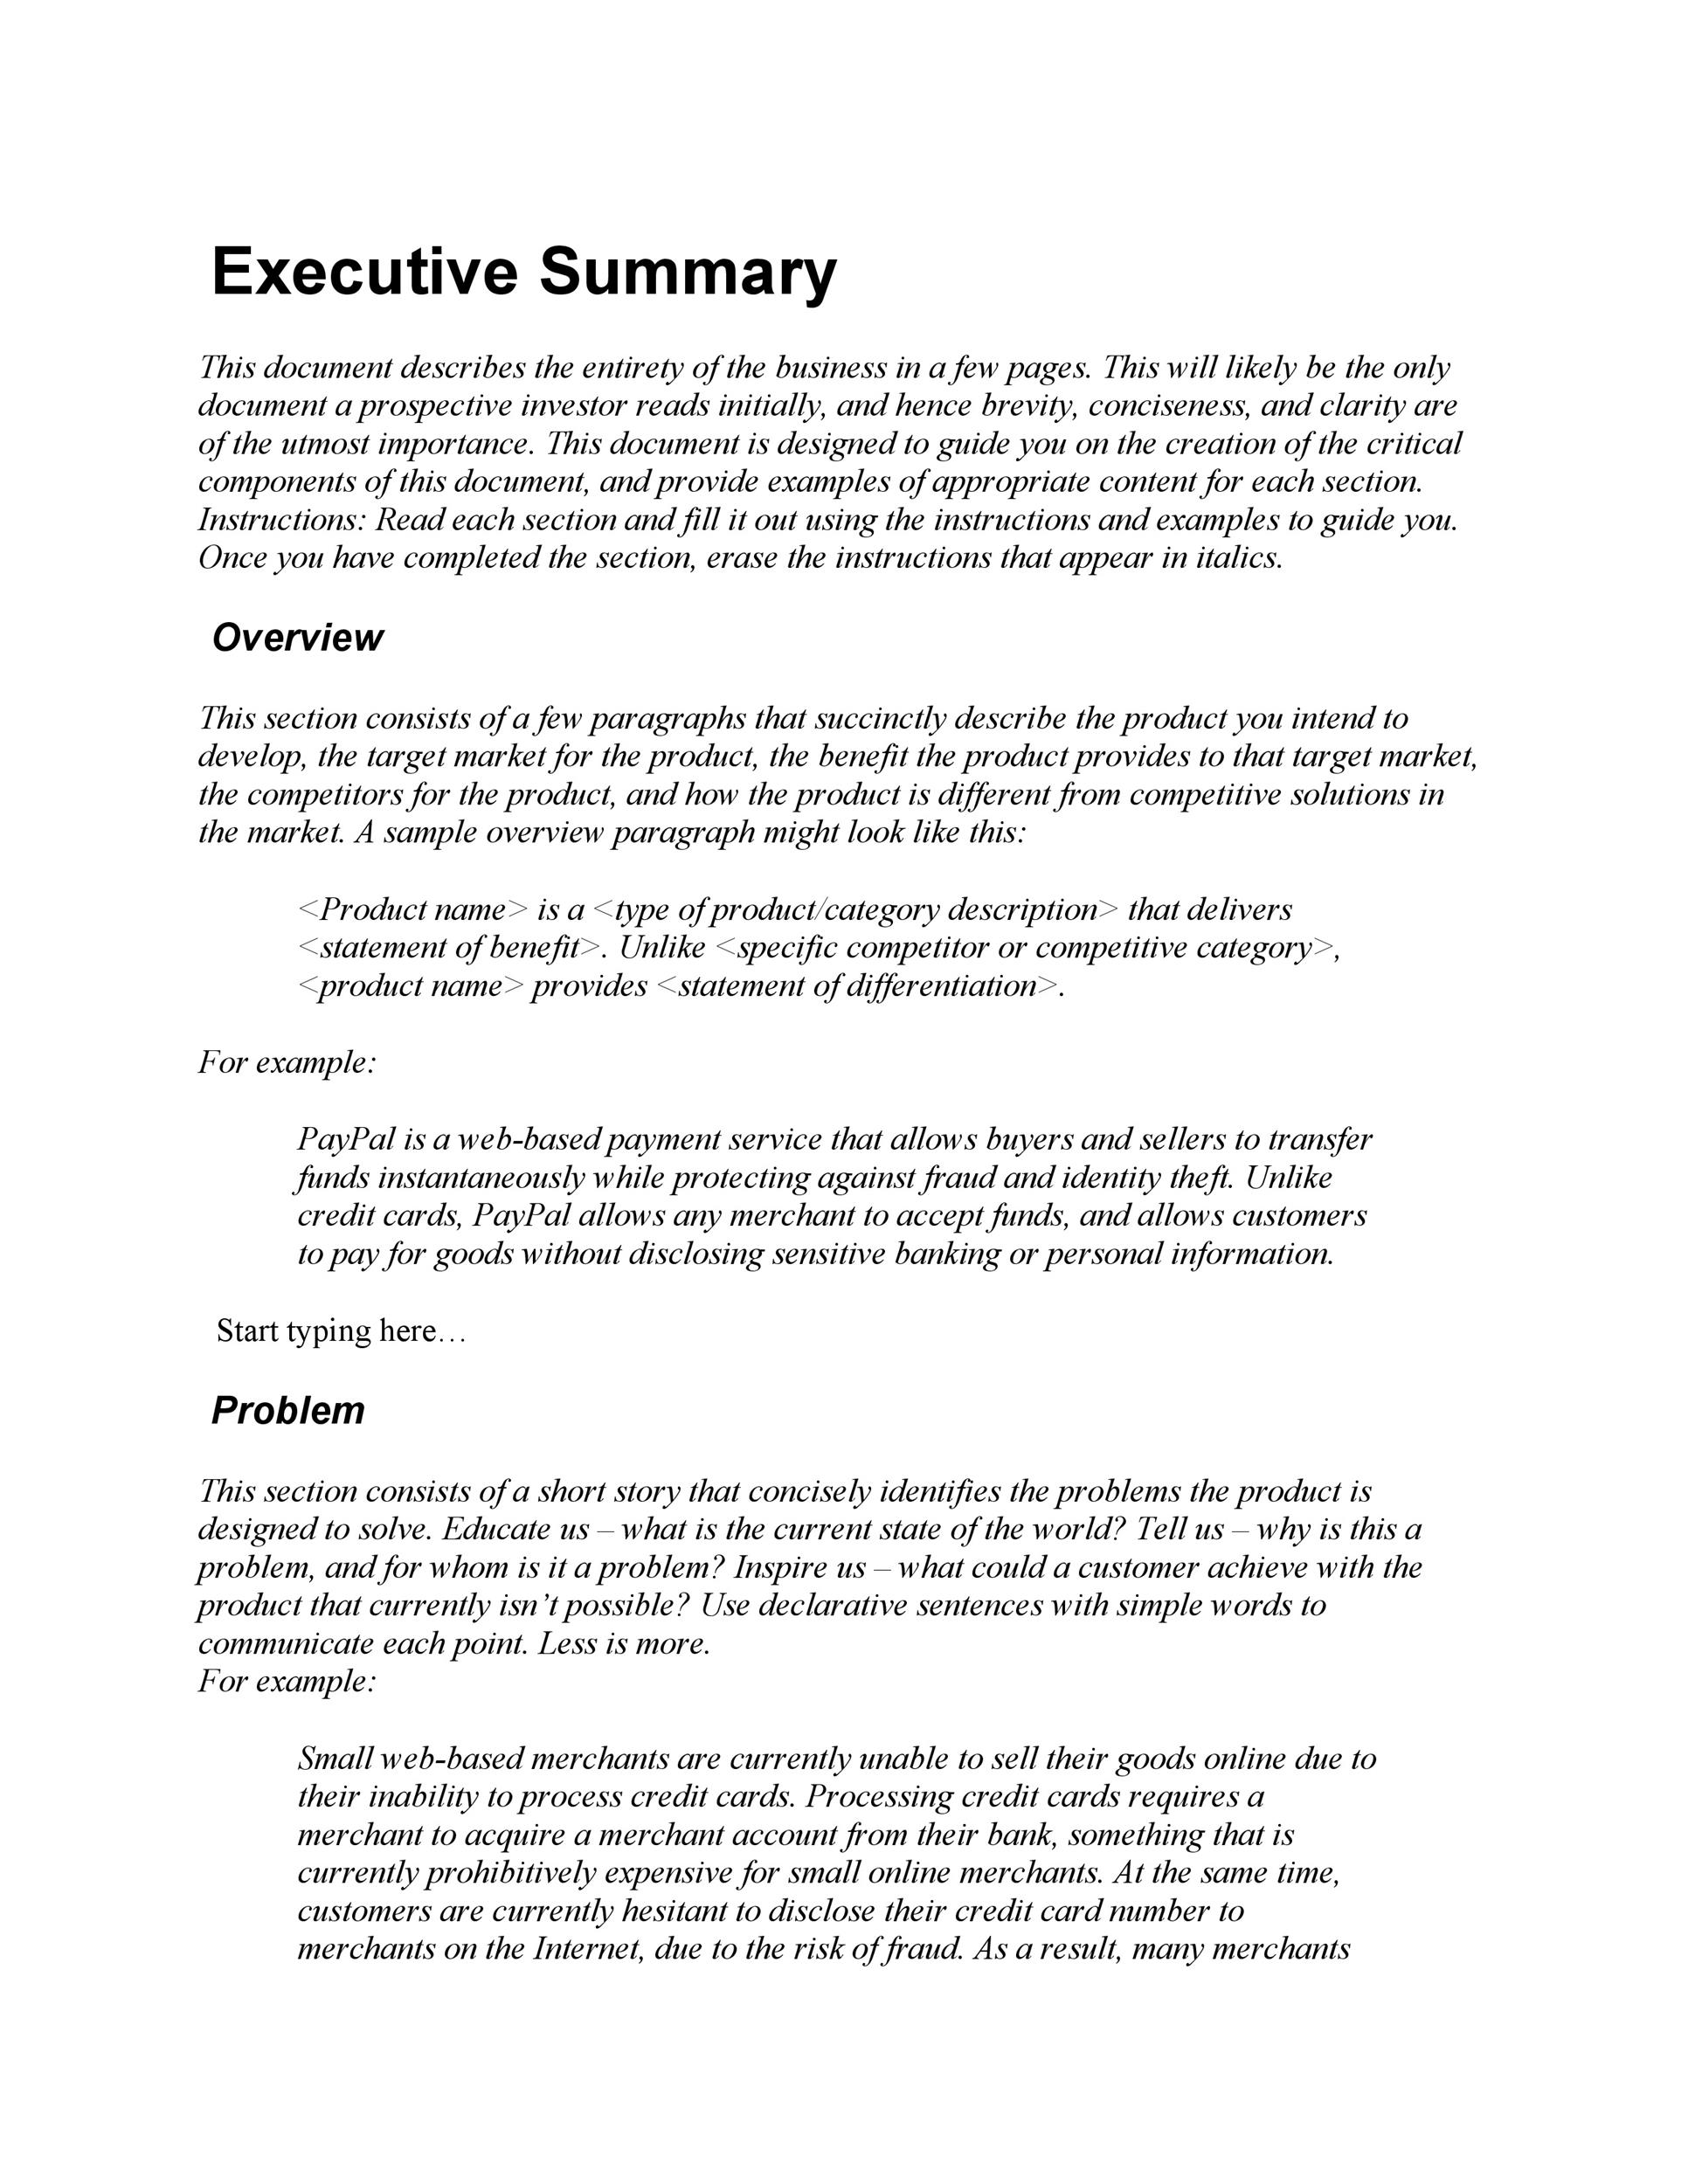 Executive summary gift store